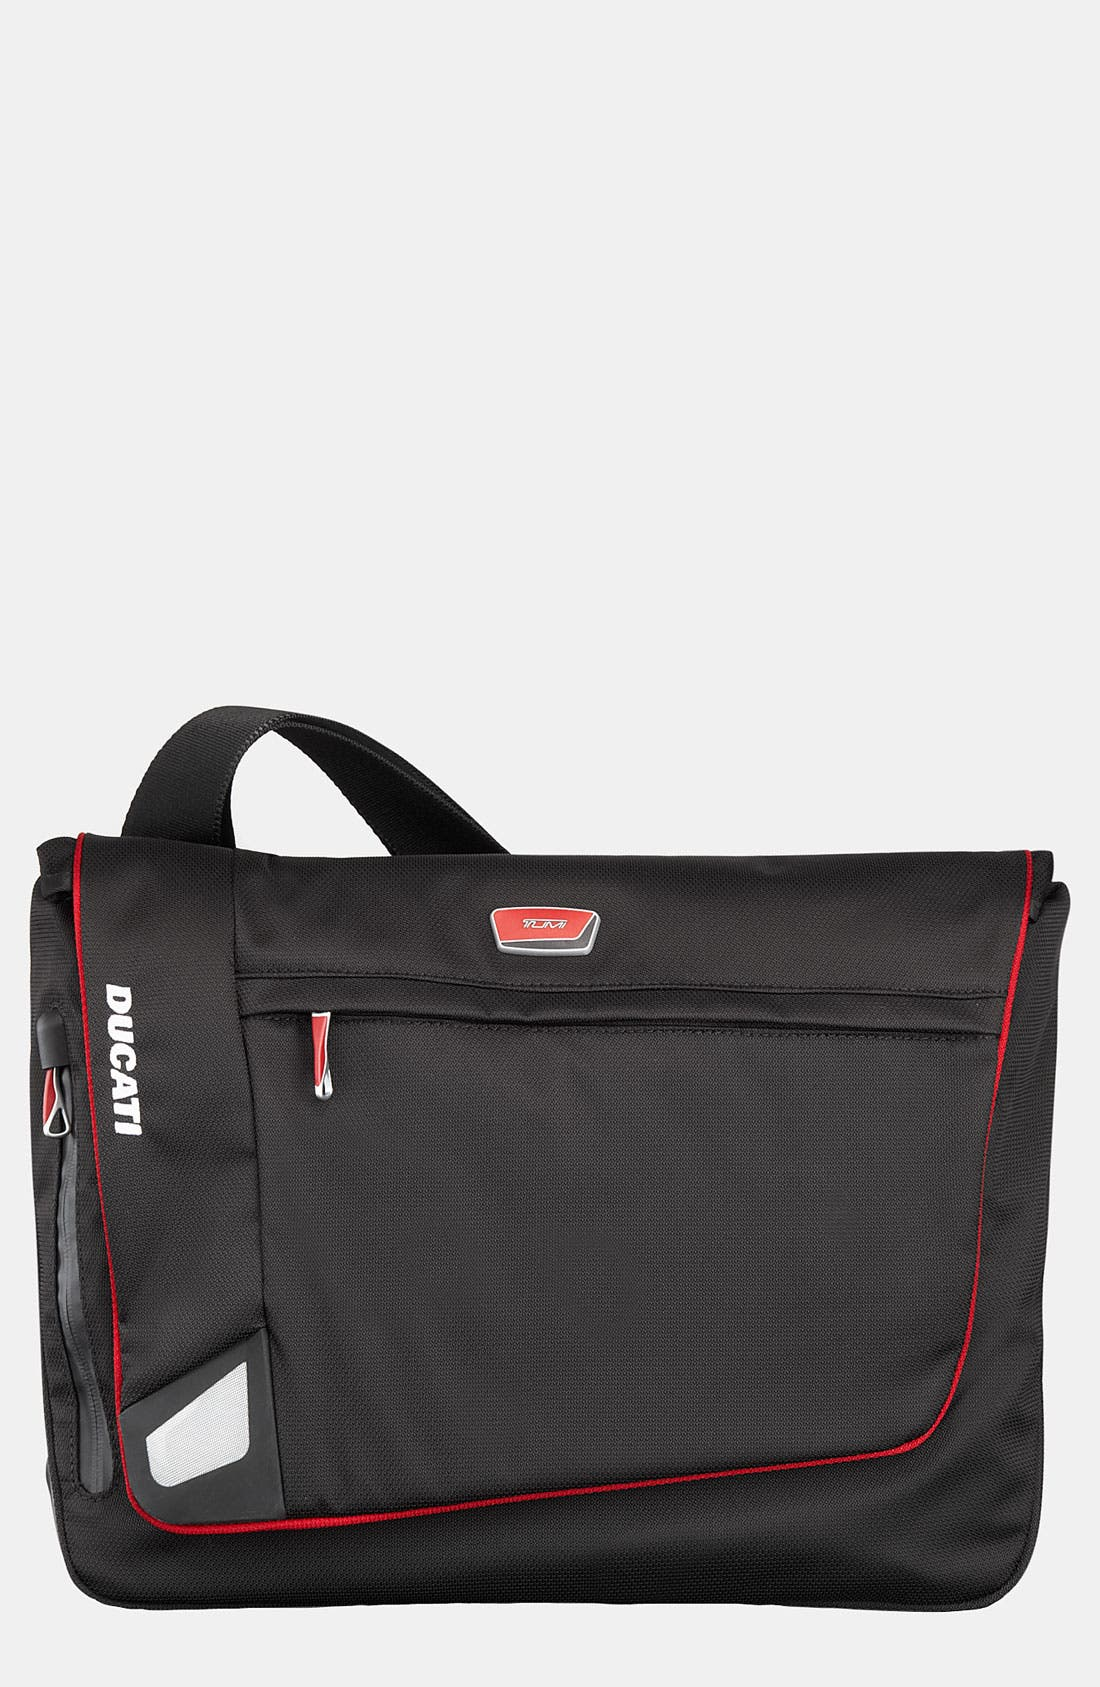 Alternate Image 1 Selected - Tumi 'Ducati - Multistrada' Laptop Messenger Bag